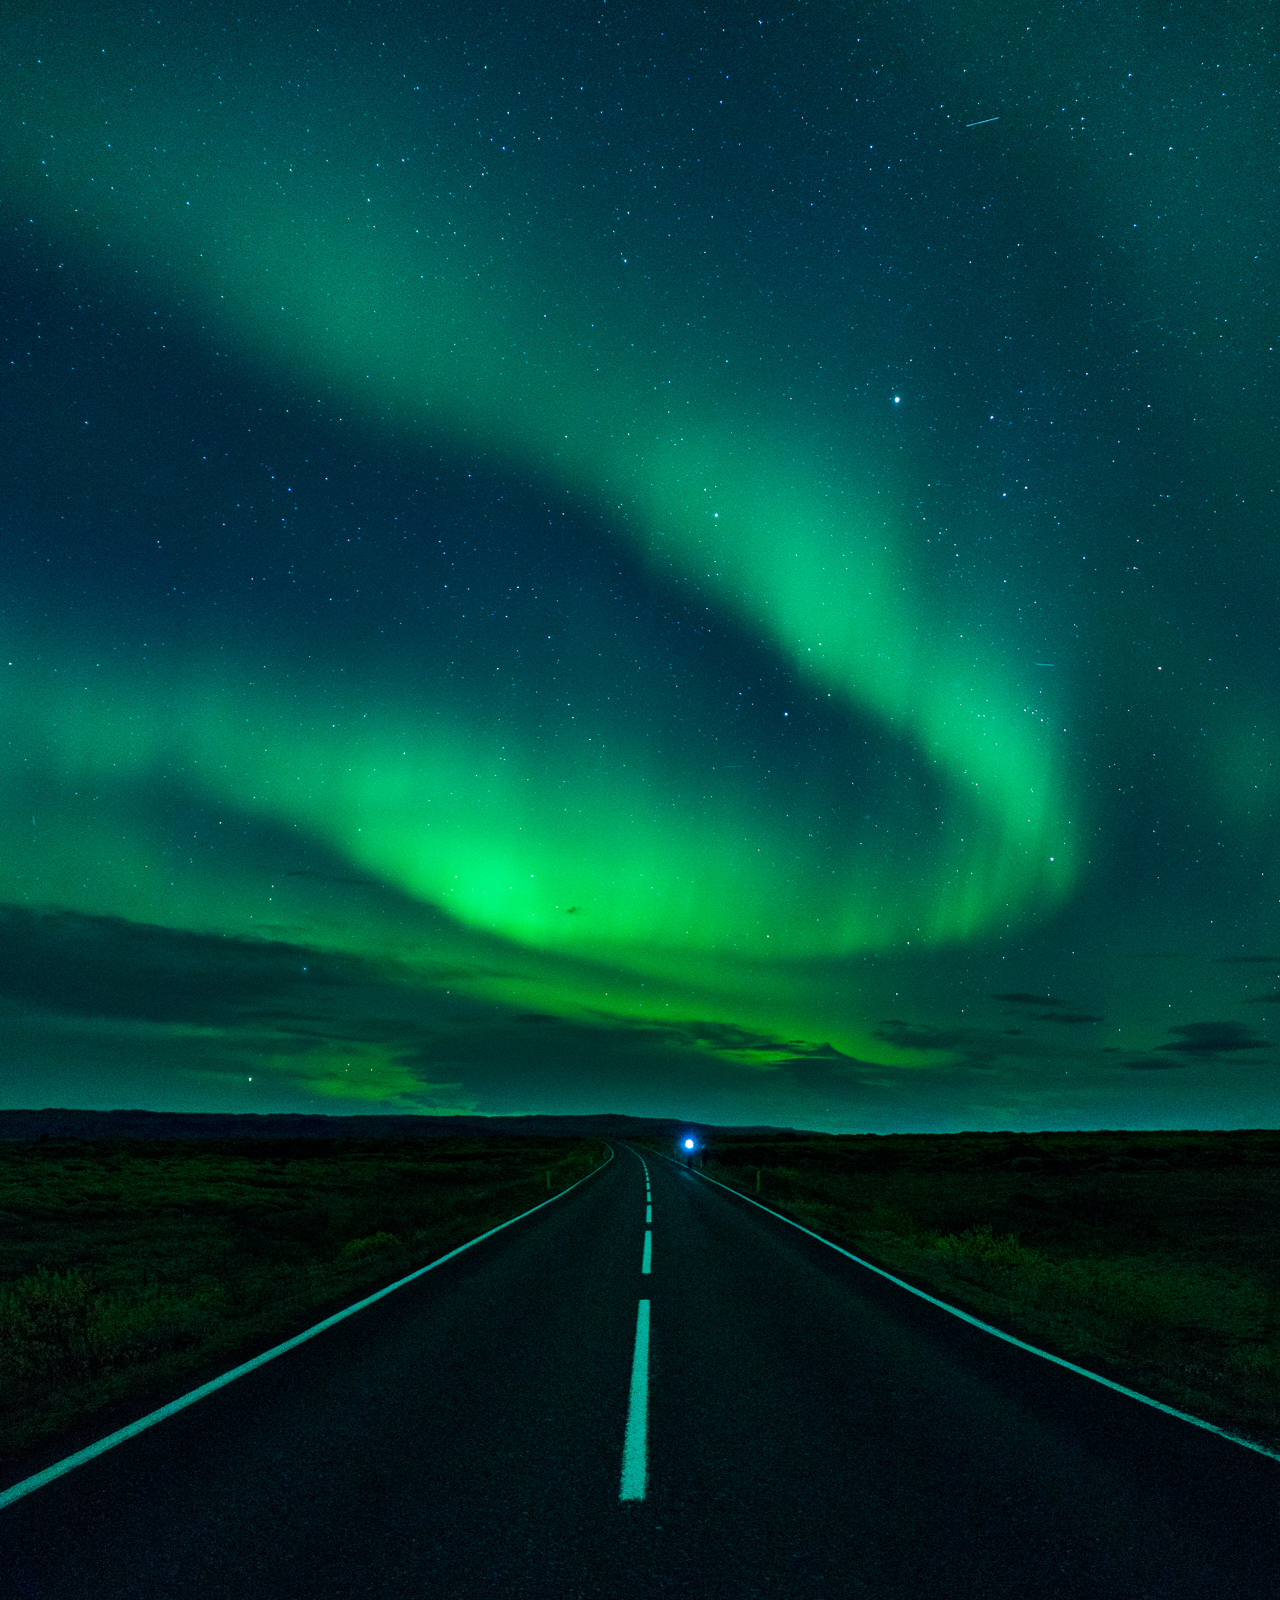 Running through the night whilst targeting a 127km run. Motivation provided by the aurora.